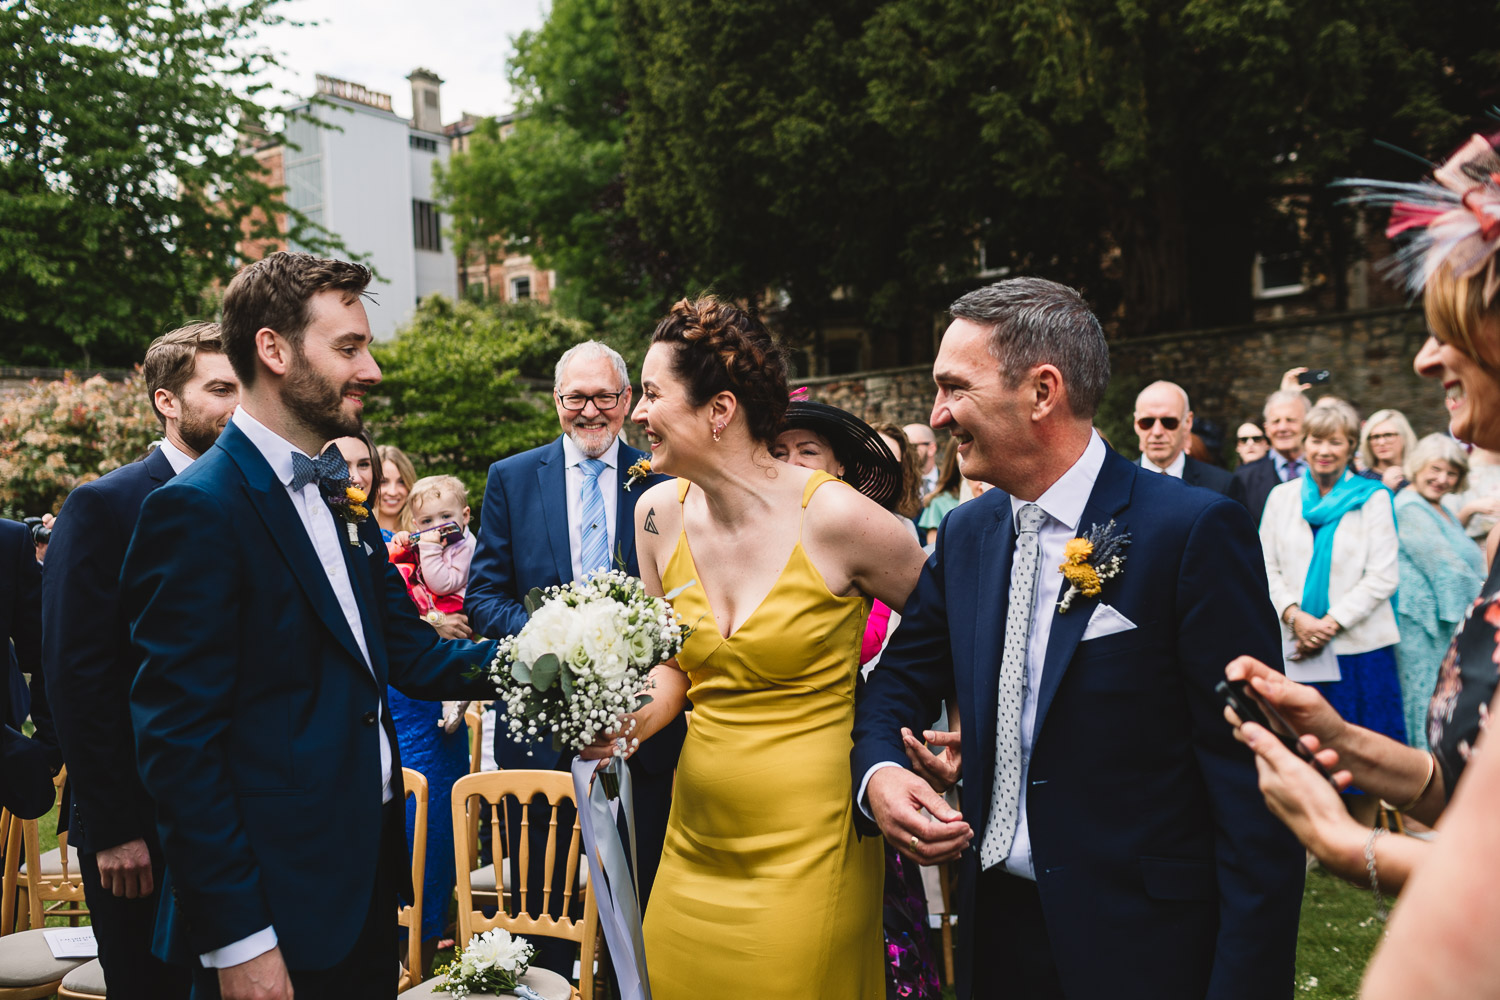 Bristol Wedding Photographer Sneak Peek-10.jpg